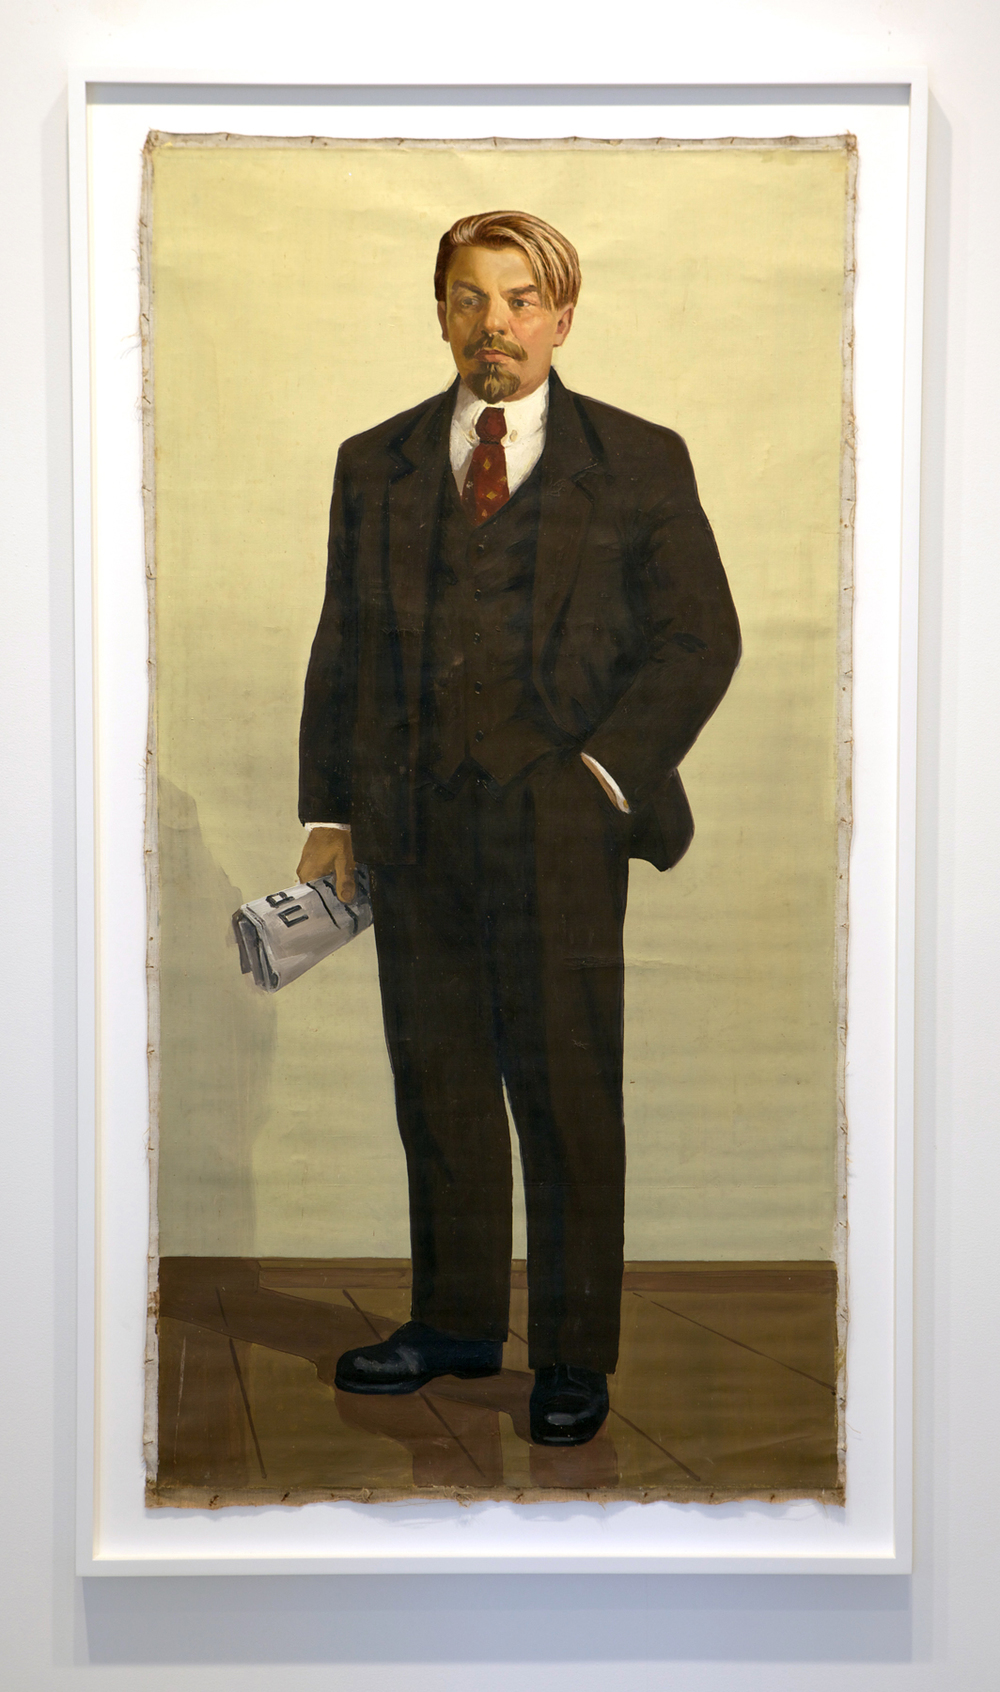 The Propeller Group   Lenin as Jack Dawson in Titanic  , 2013   oil and embroidery on canvas   66.75 x 37.5 inches   169.5 x 95.3 cm